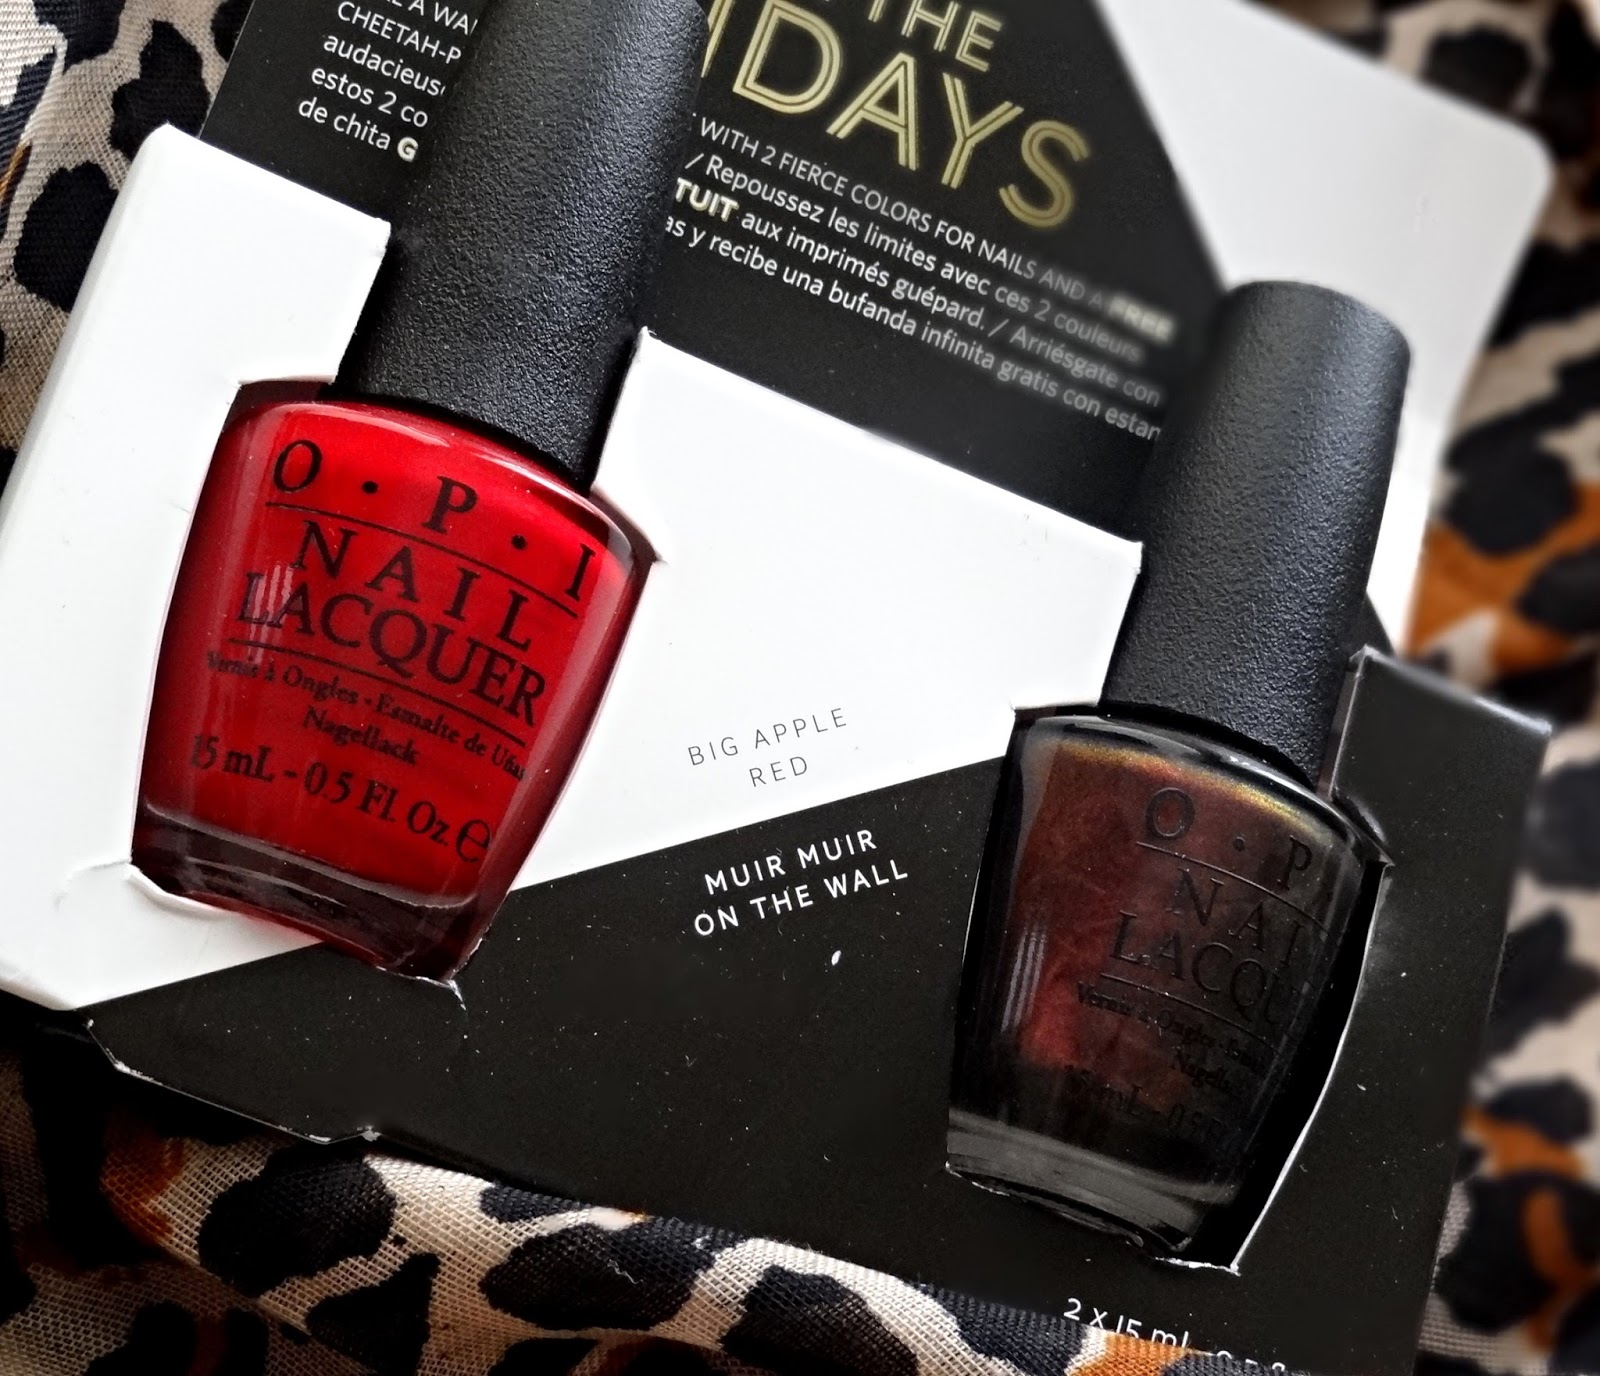 OPI Wrapped Wild For The Holidays - Muir Muir On The Wall, Big Apple Red   OPI Holiday 2014 Limited Edition